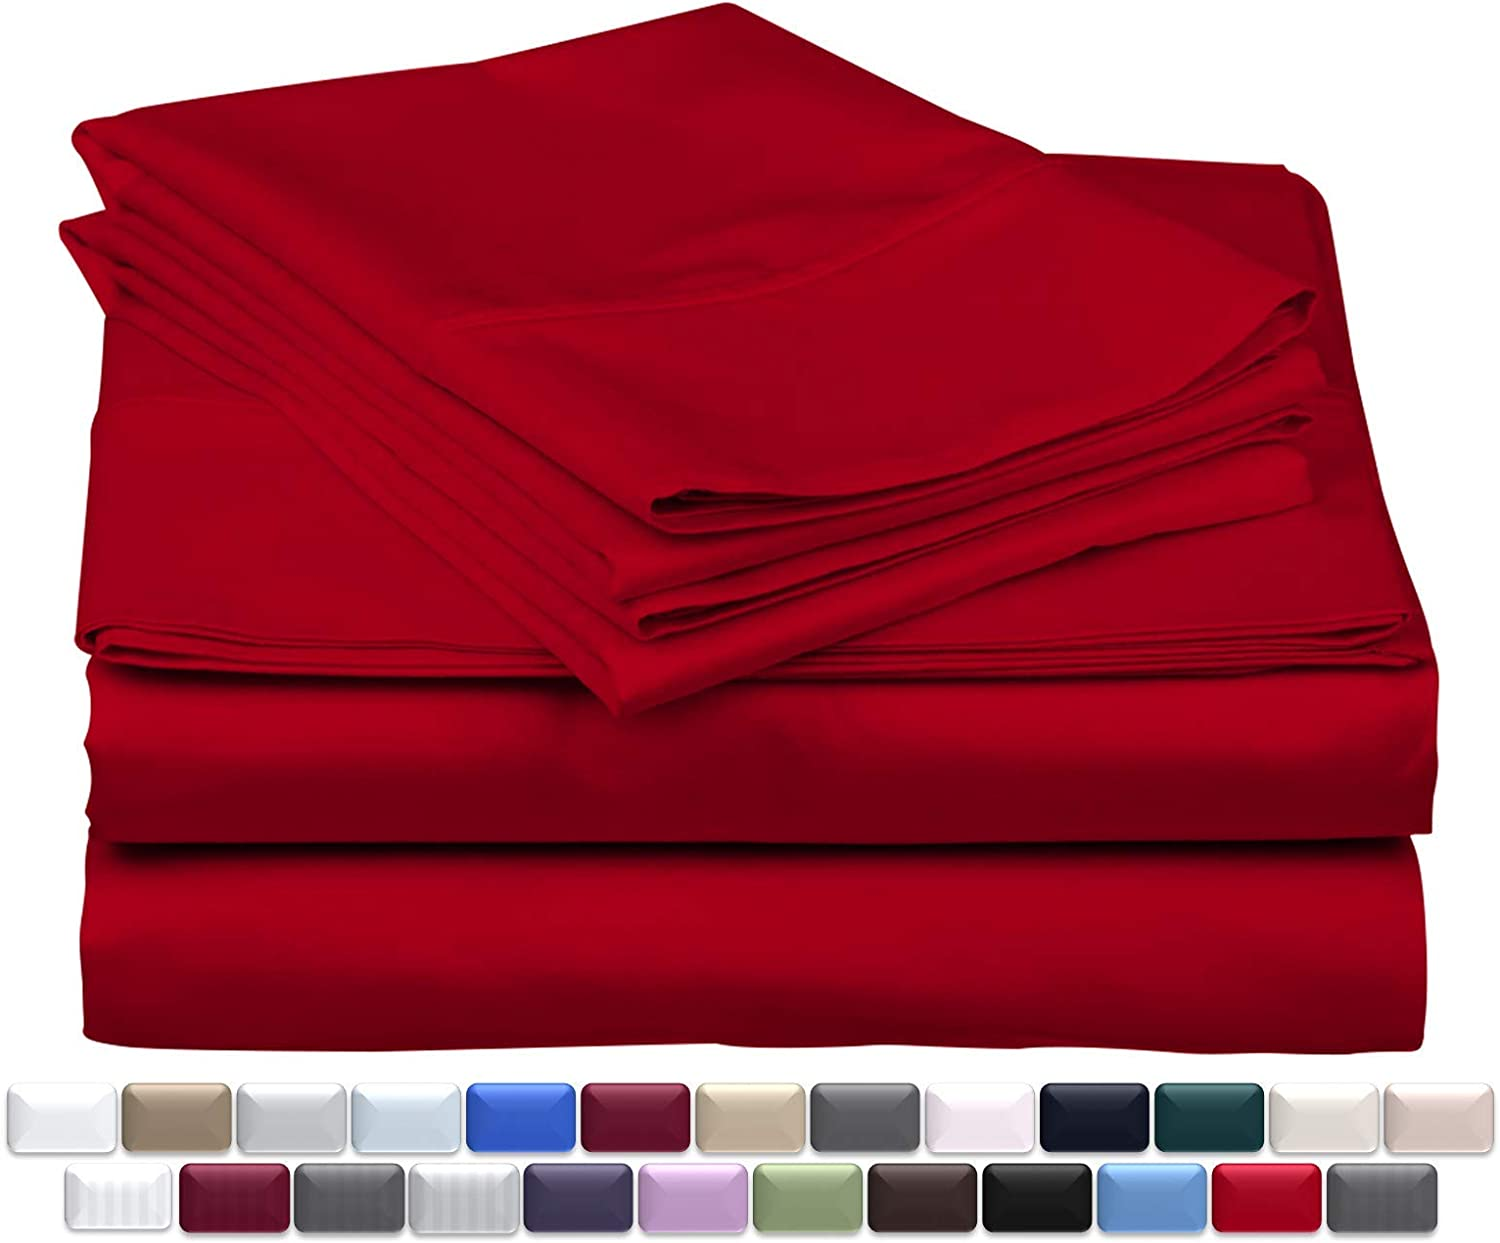 True Luxury 1000-Thread-Count 100% Egyptian Cotton Bed Sheets, 4-Pc King RED Sheet Set, Single Ply Long-Staple Yarns, Sateen Weave, Fits Mattress Upto 18'' Deep Pocket